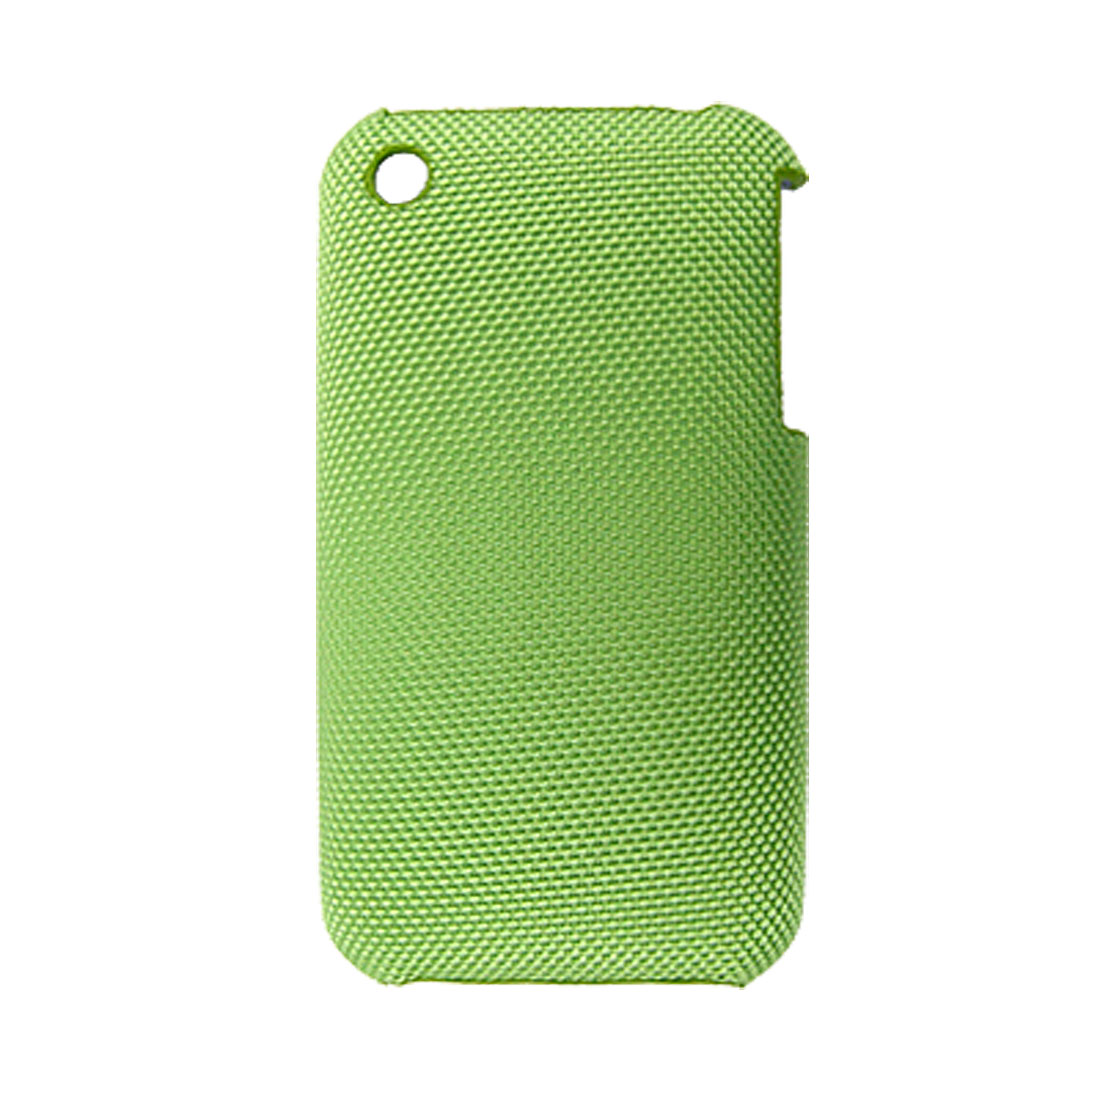 Green Hard Plastic Back Shield Case with Non-slip Exterior for iPhone 3G